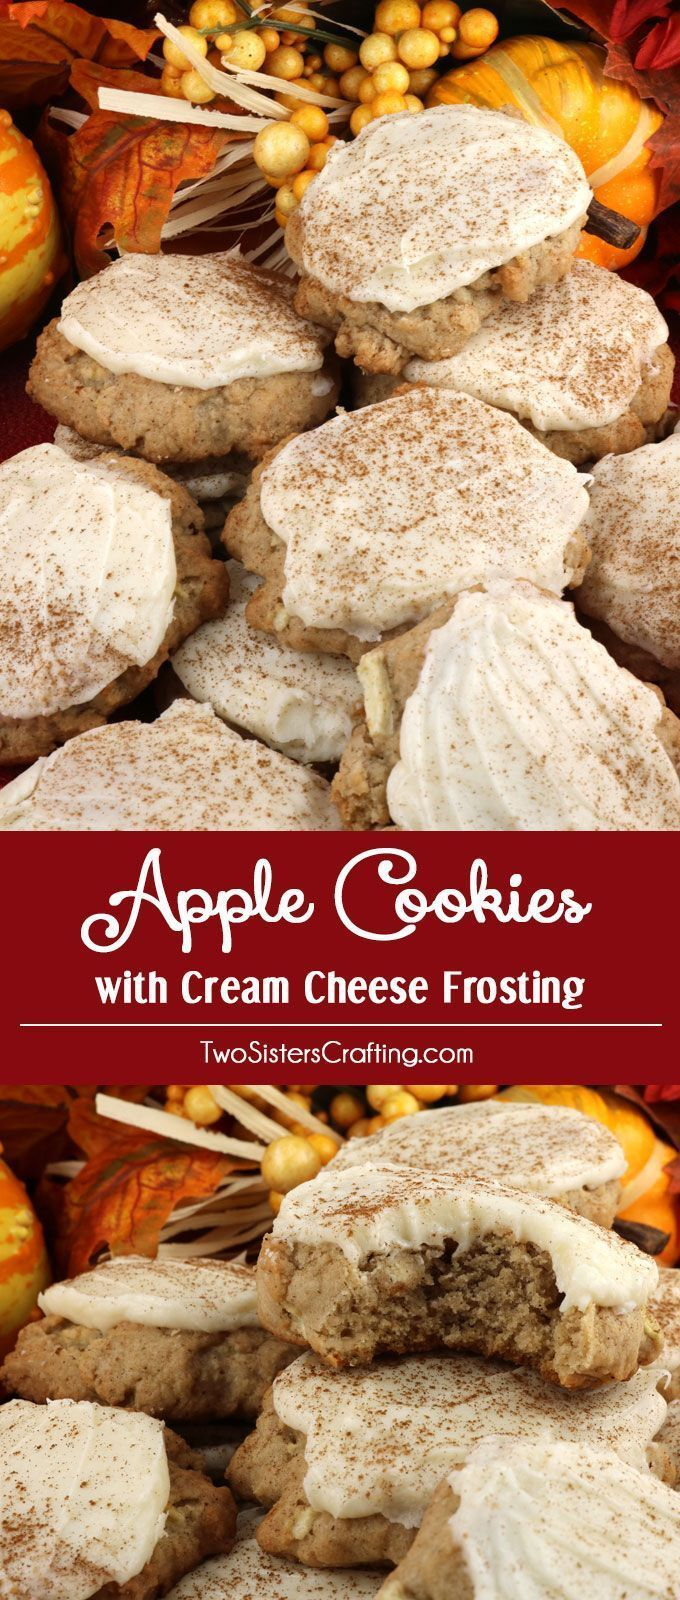 Apple biscuits and cream cheese frosting Apples and cinnamon come together in ... Apple biscuits an